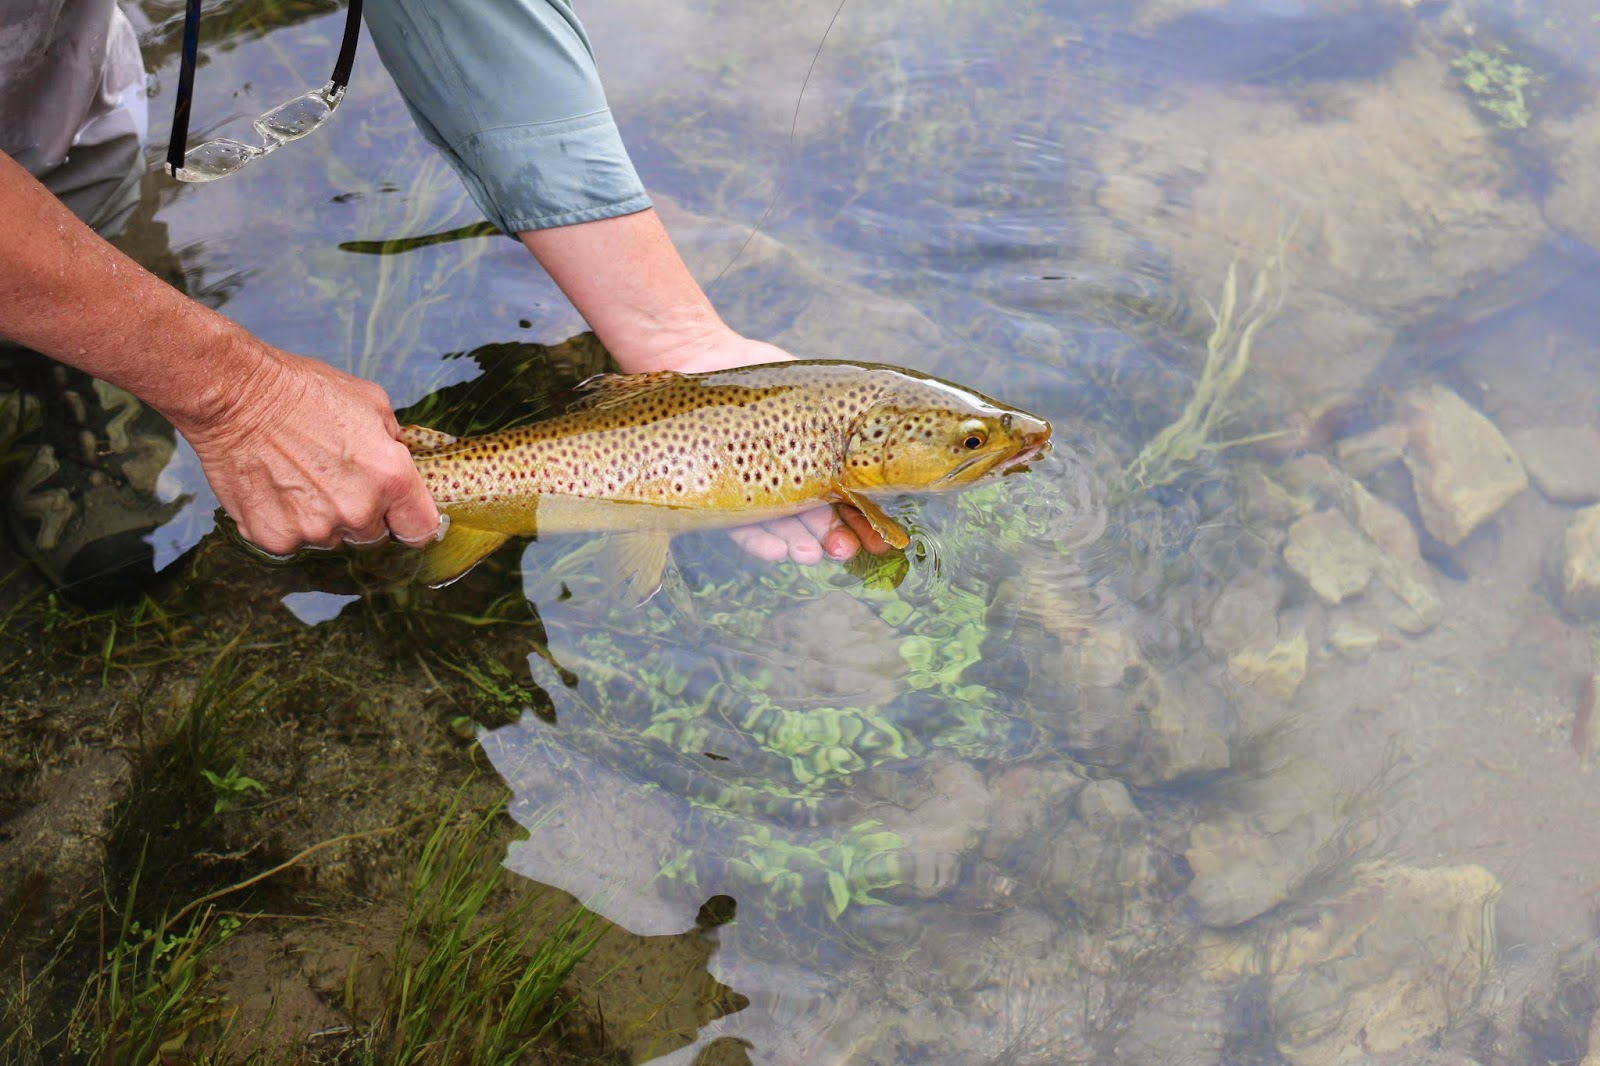 Fly+Fish+the+Green+River+A+section+with+Jay+Scott+Outdoors+during+the+Cicada+Hatch+June+2014+18.JPG